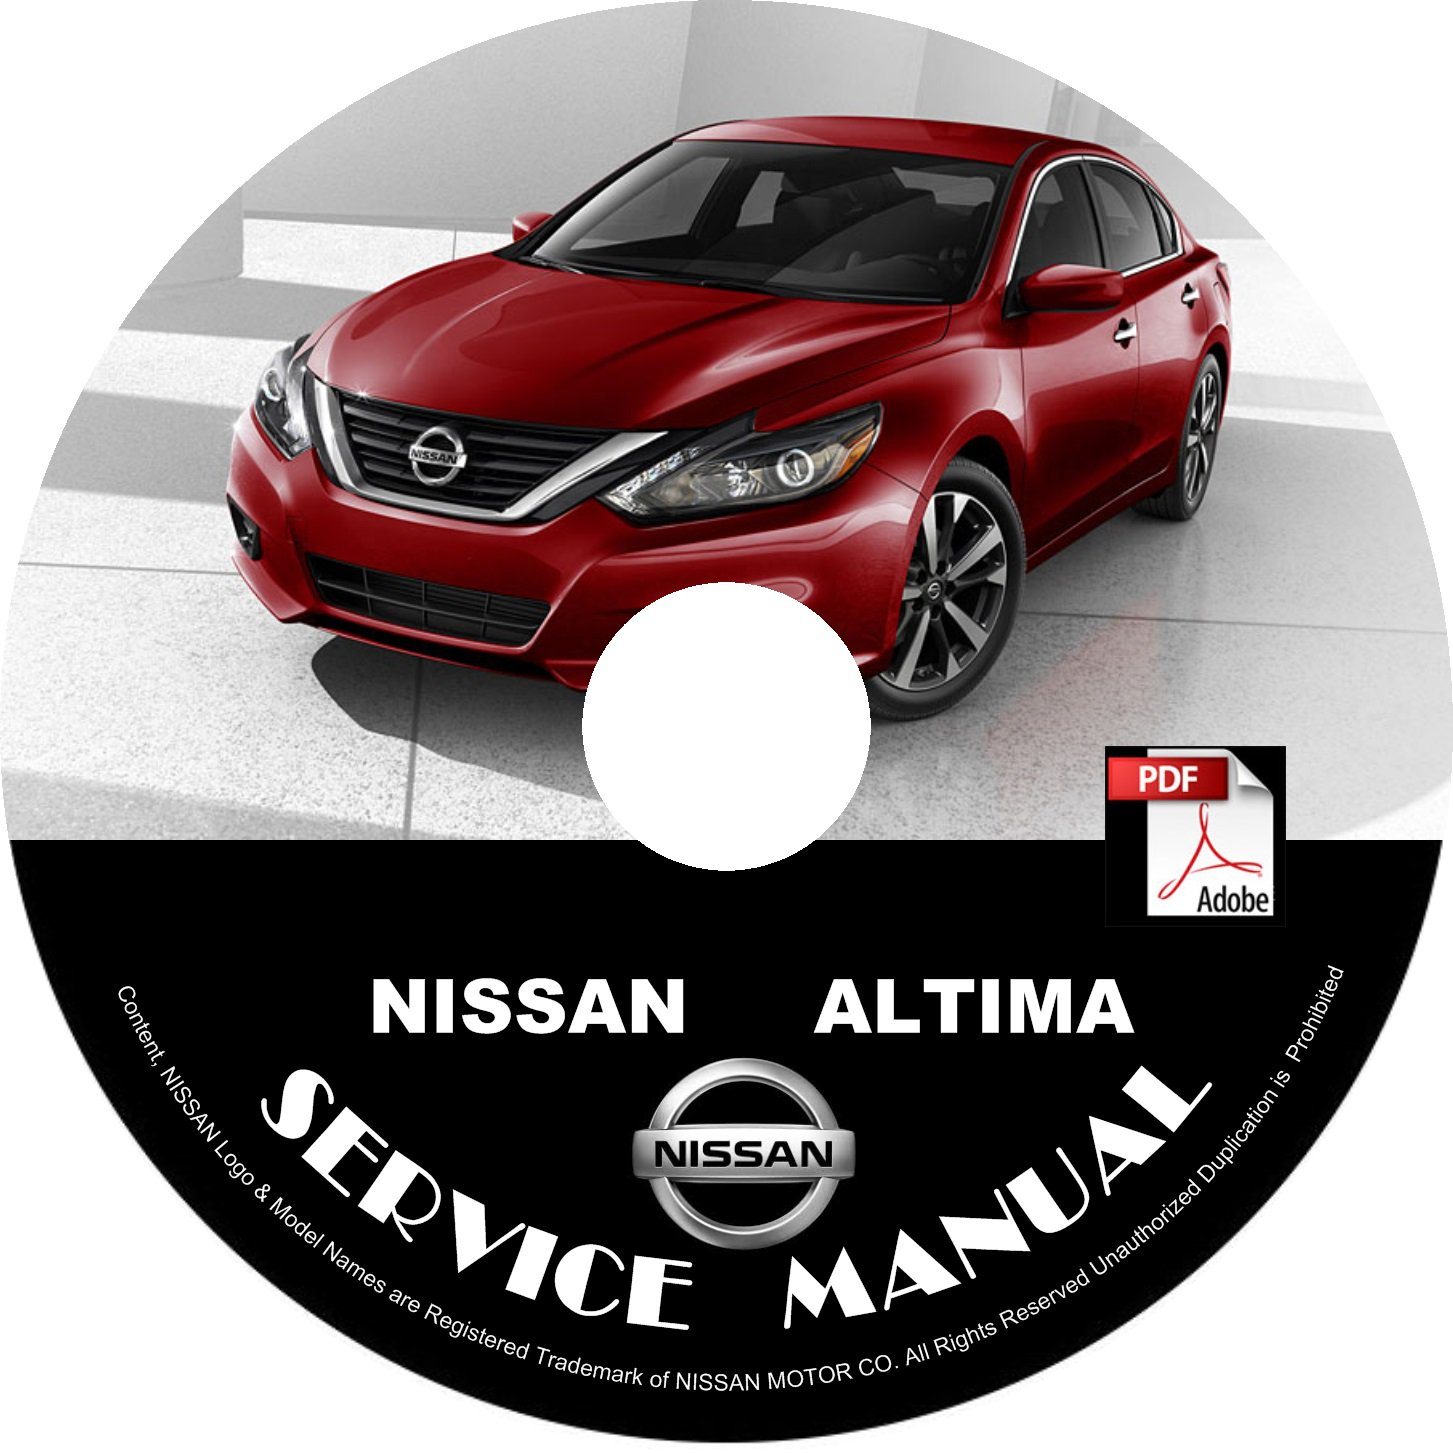 2016 Nissan Altima Service Repair Shop Manual on CD